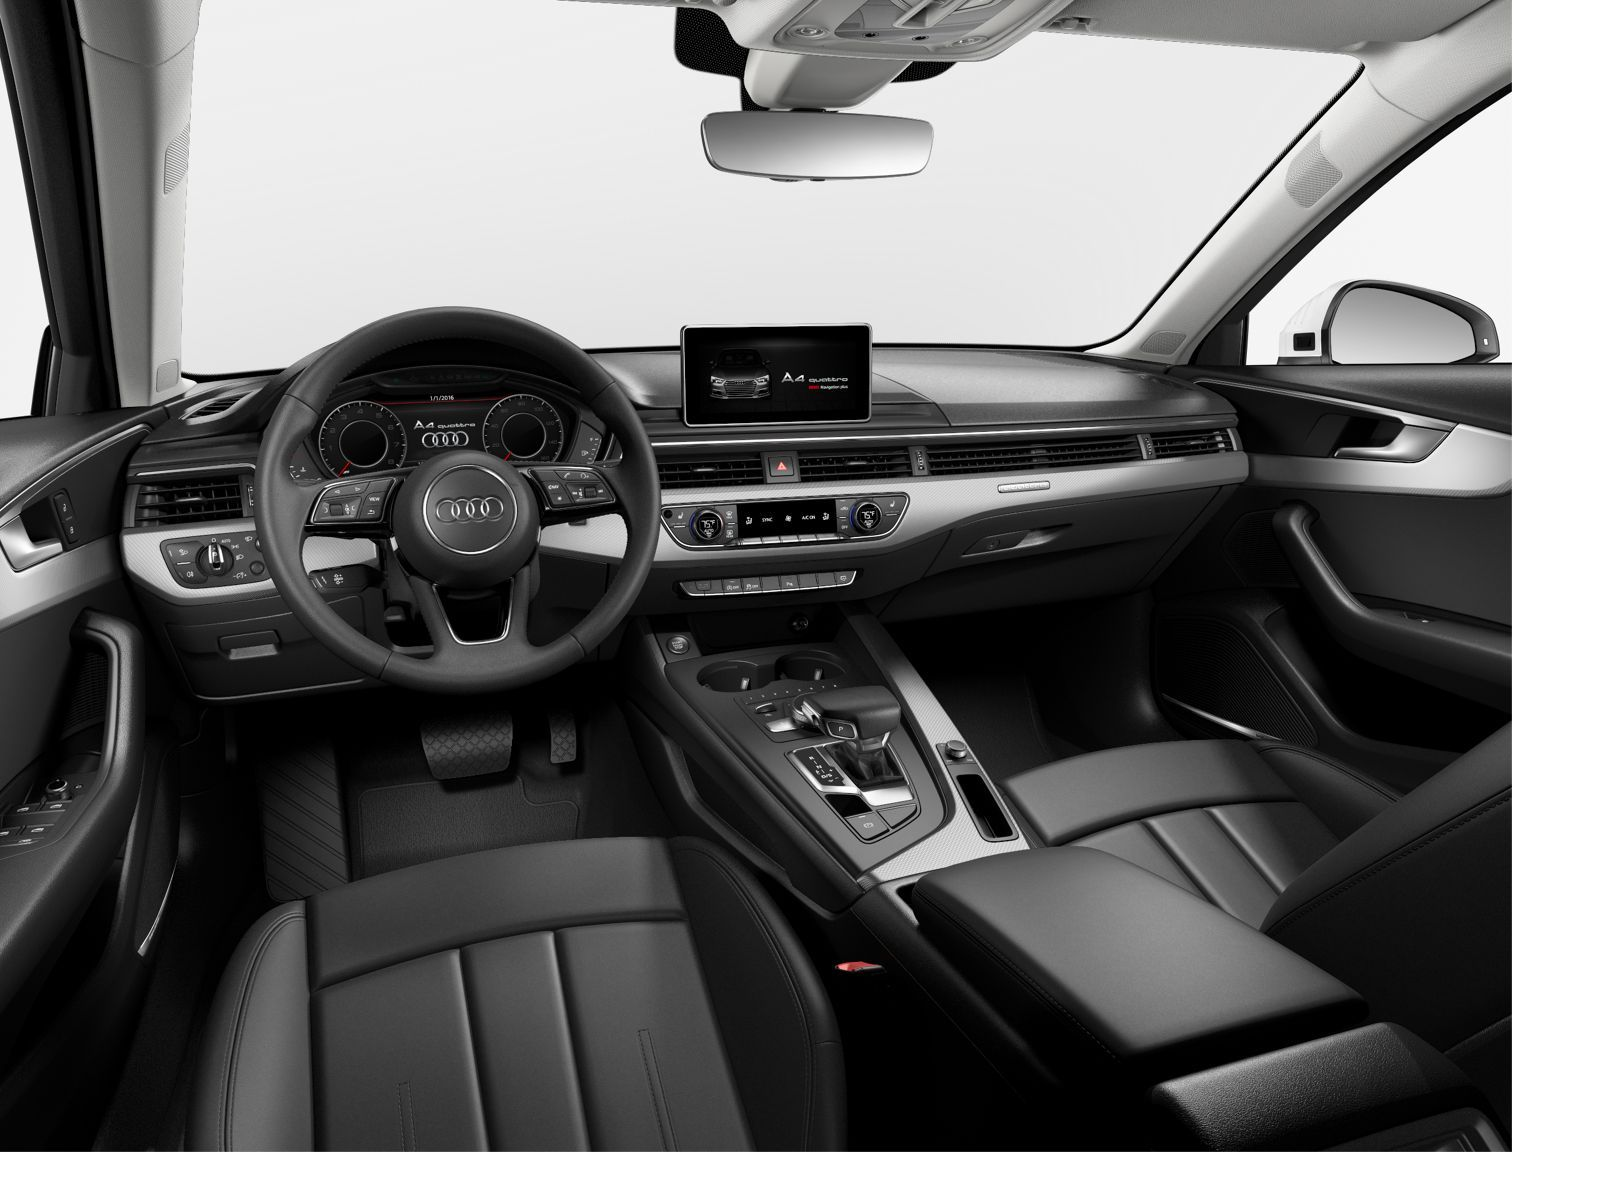 2017 audi a4 prestige with larger infotainment screen mmi touch and full width lcd